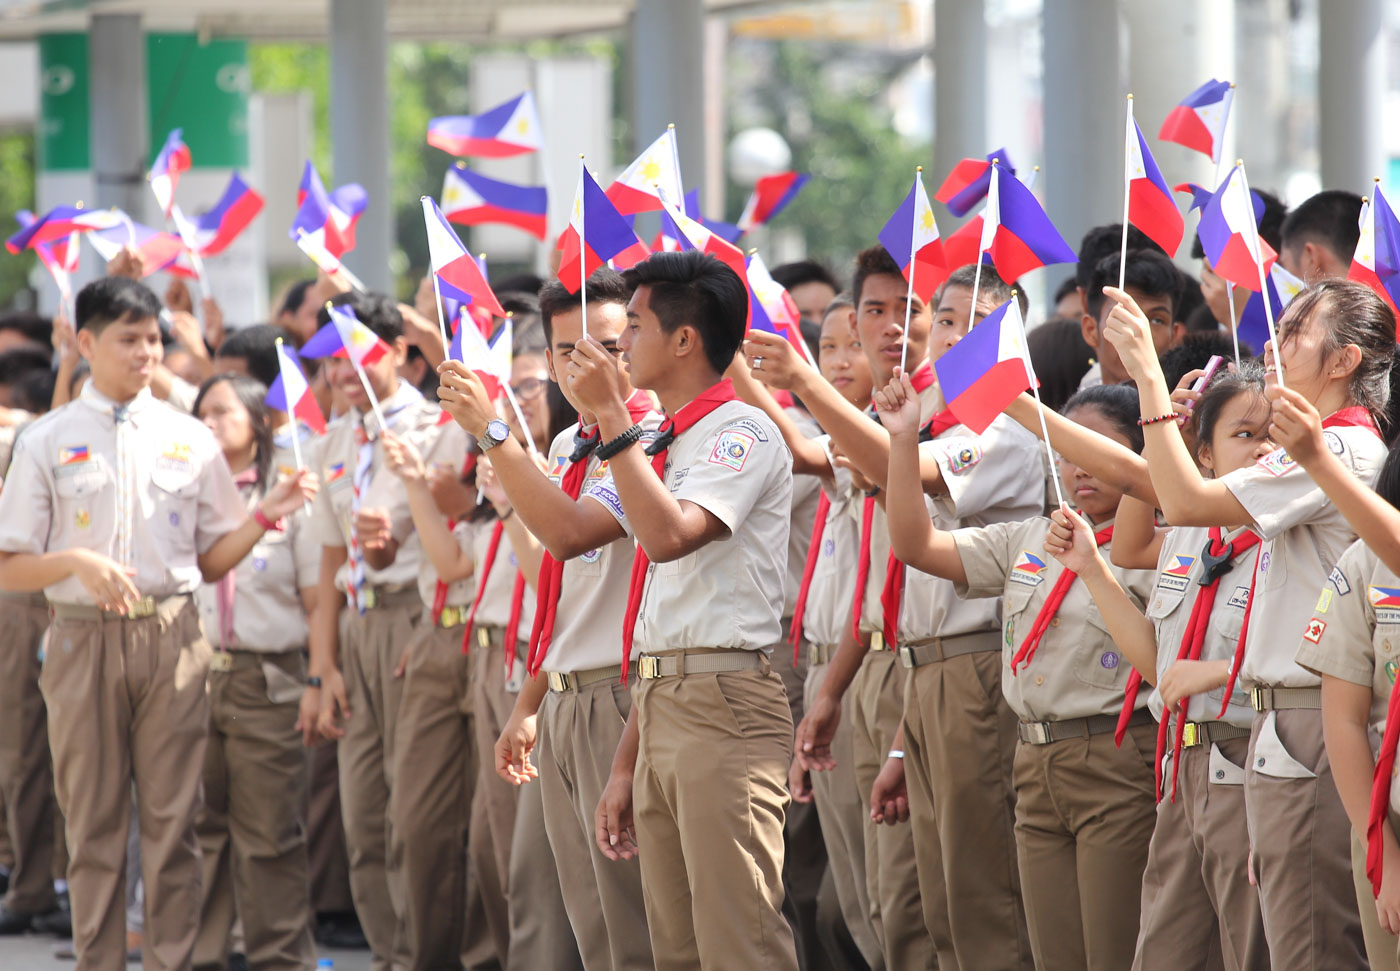 How to sing ph national anthem and display symbols in proposed how to sing ph national anthem and display symbols in proposed flag code biocorpaavc Choice Image